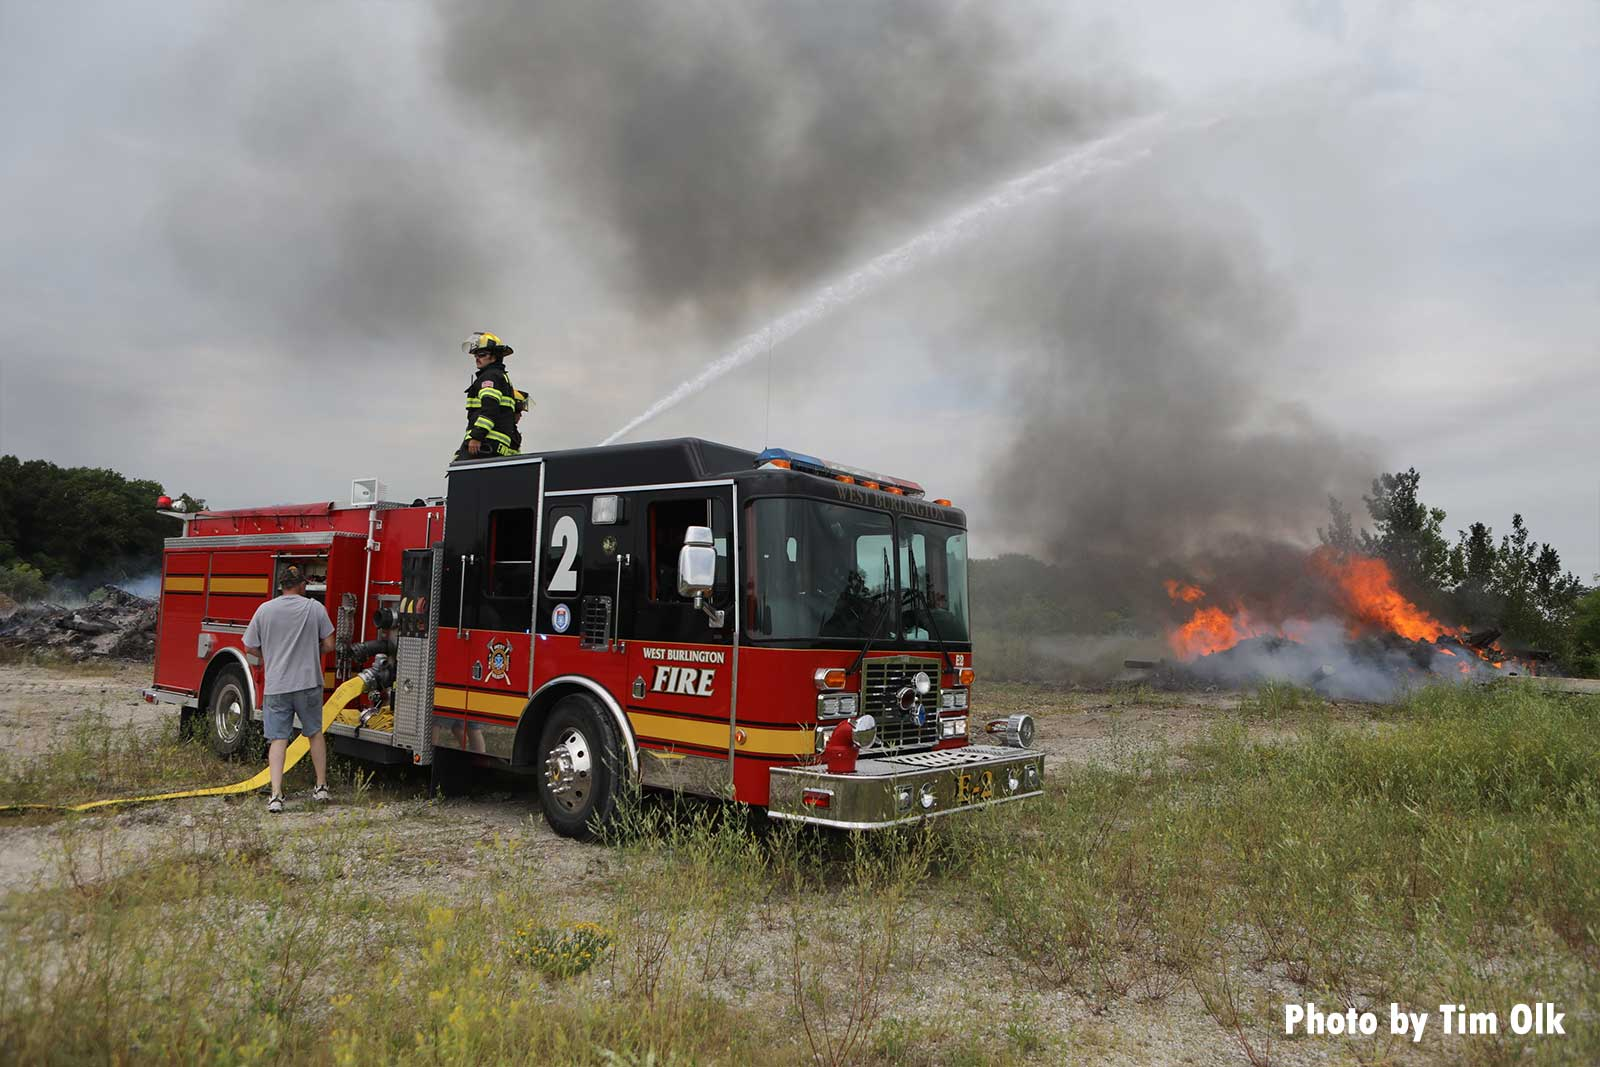 Firefighters use a master stream to put water on the fire